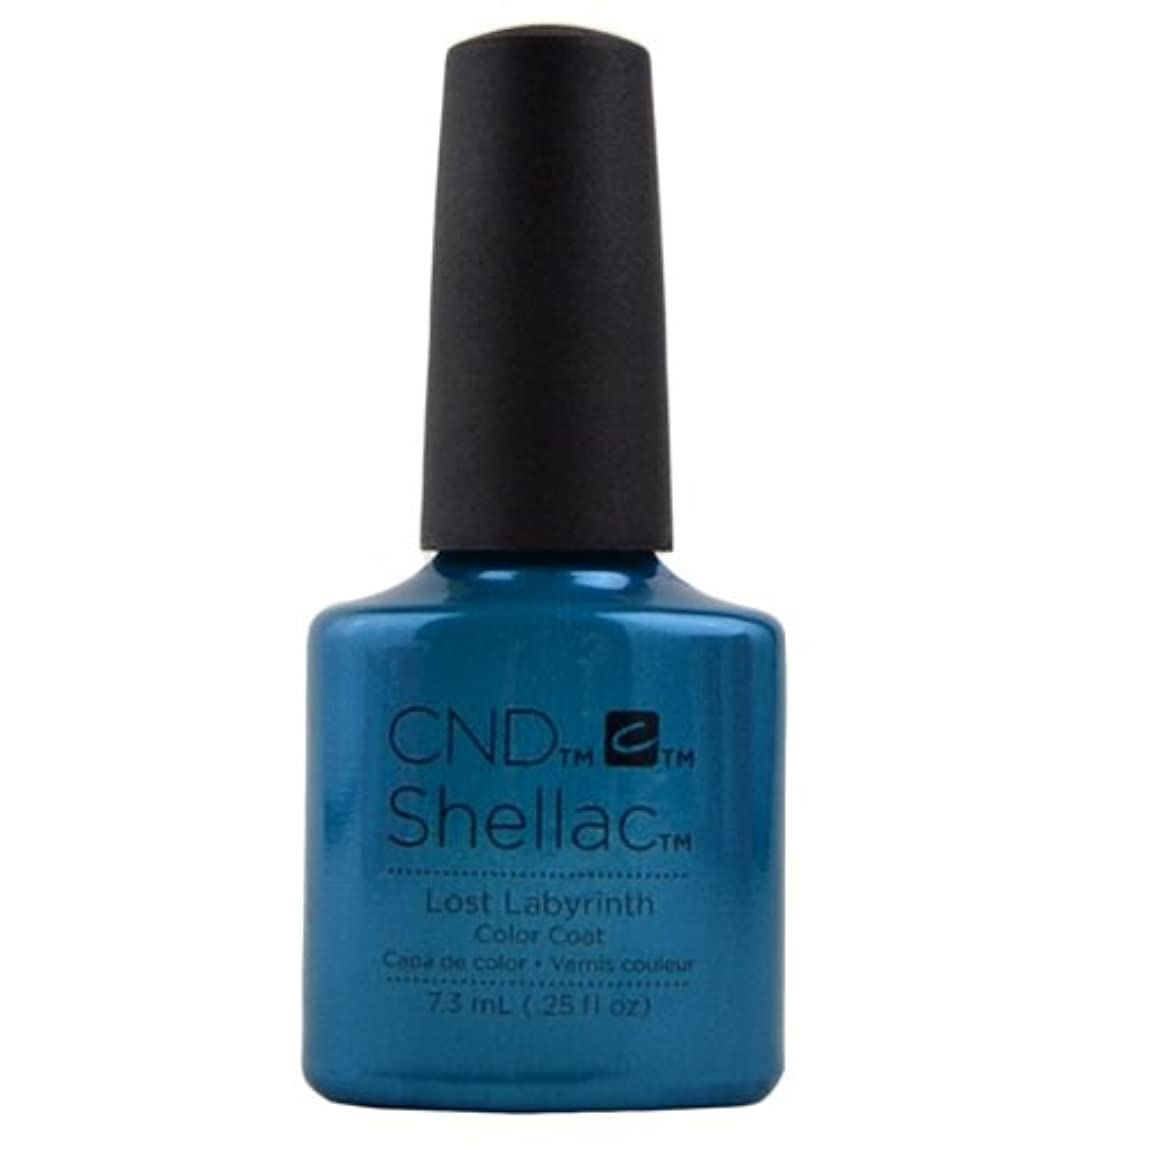 命令的暴動気絶させるCND Shellac Gel Polish - Lost Labyrinth - 0.25oz / 7.3ml